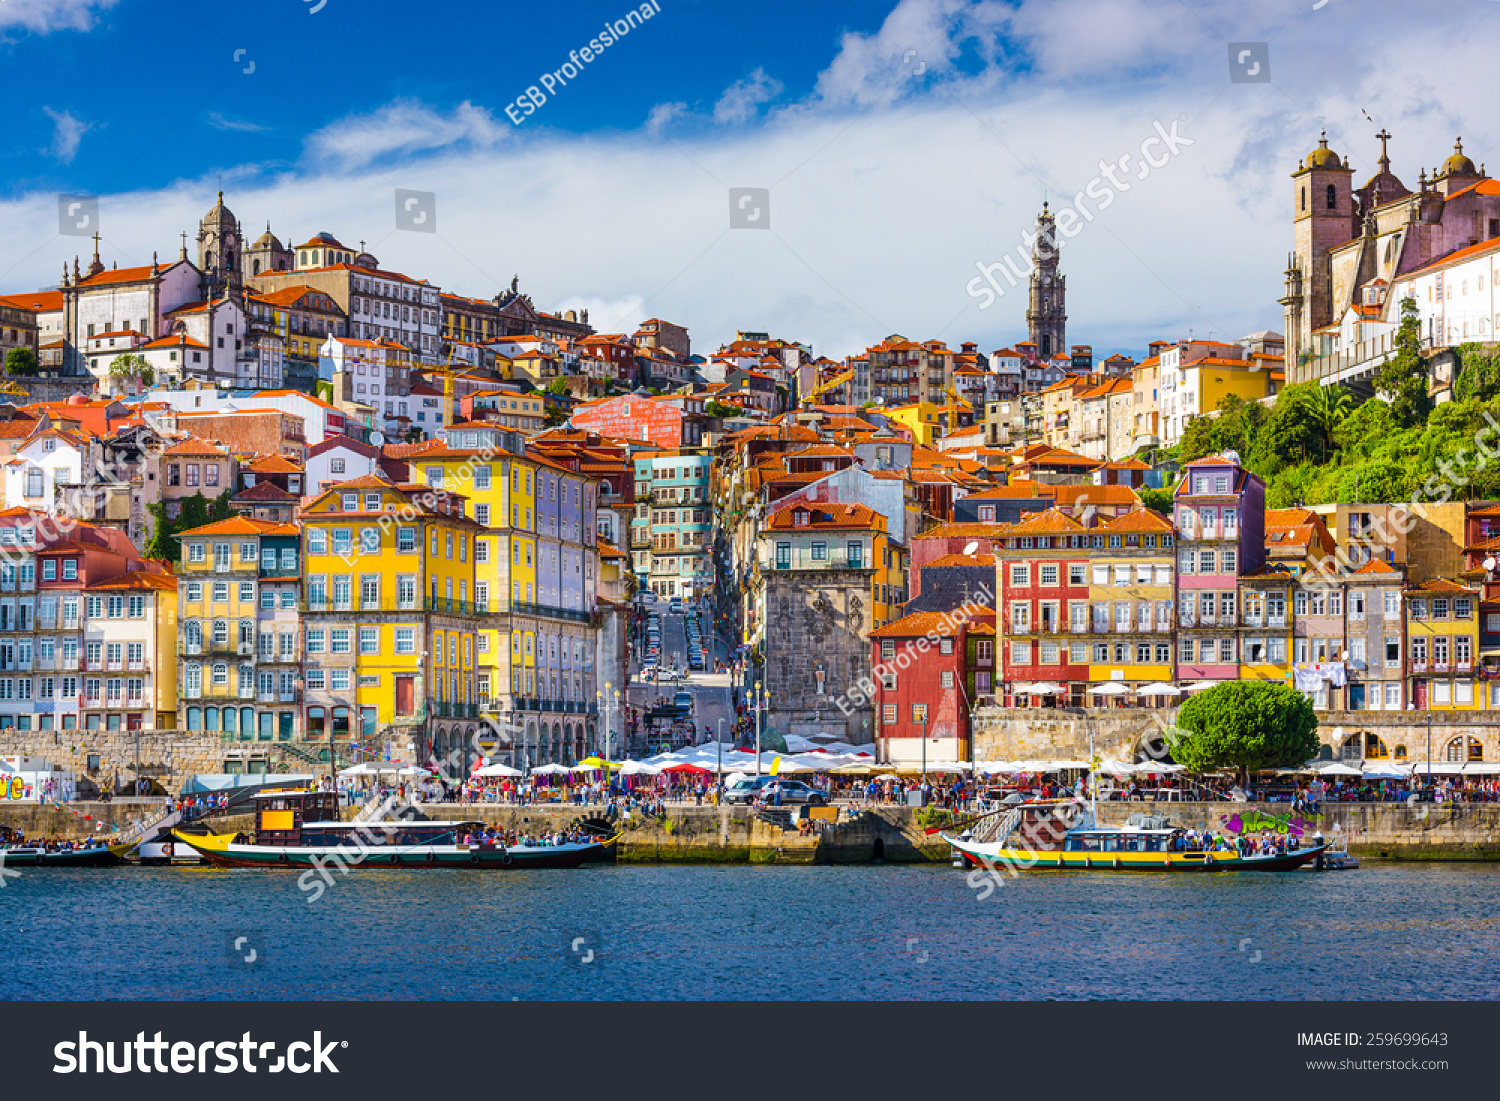 Know your Geography 2 - Page 3 Stock-photo-porto-portugal-old-town-skyline-from-across-the-douro-river-259699643